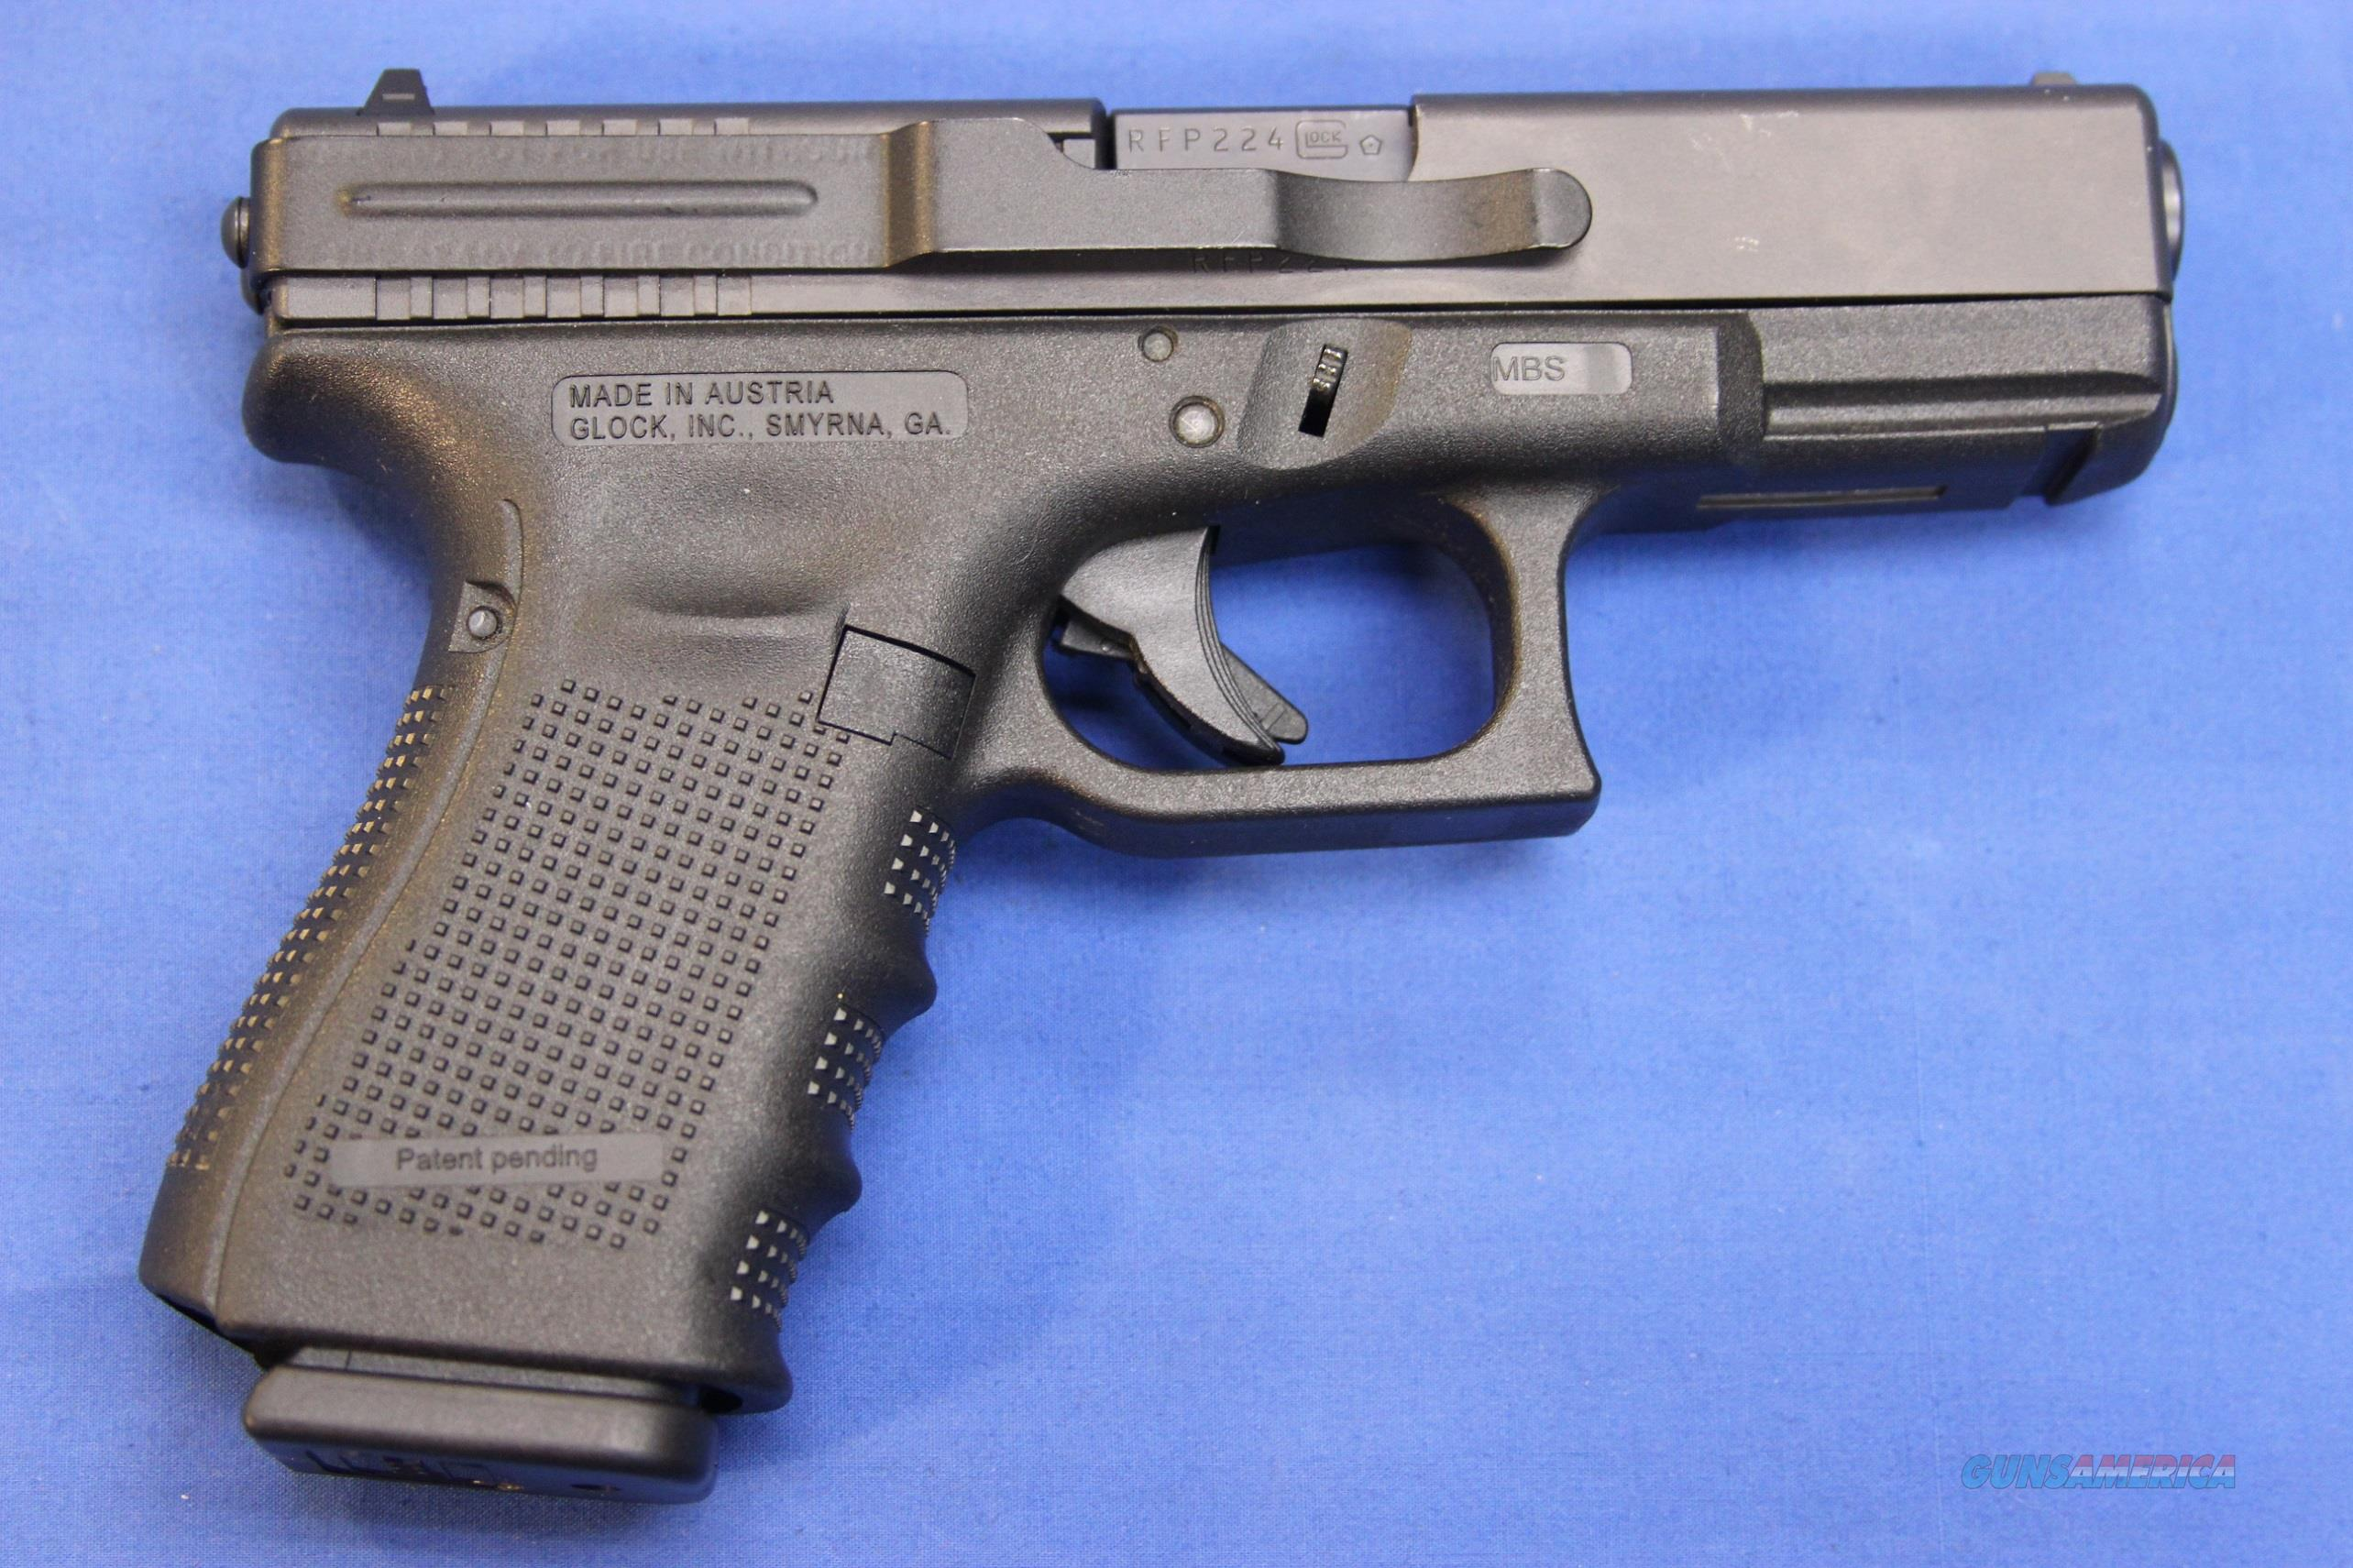 GLOCK 23 GEN4 .40 S&W w/ BOX & ACCESSORIES  Guns > Pistols > Glock Pistols > 23